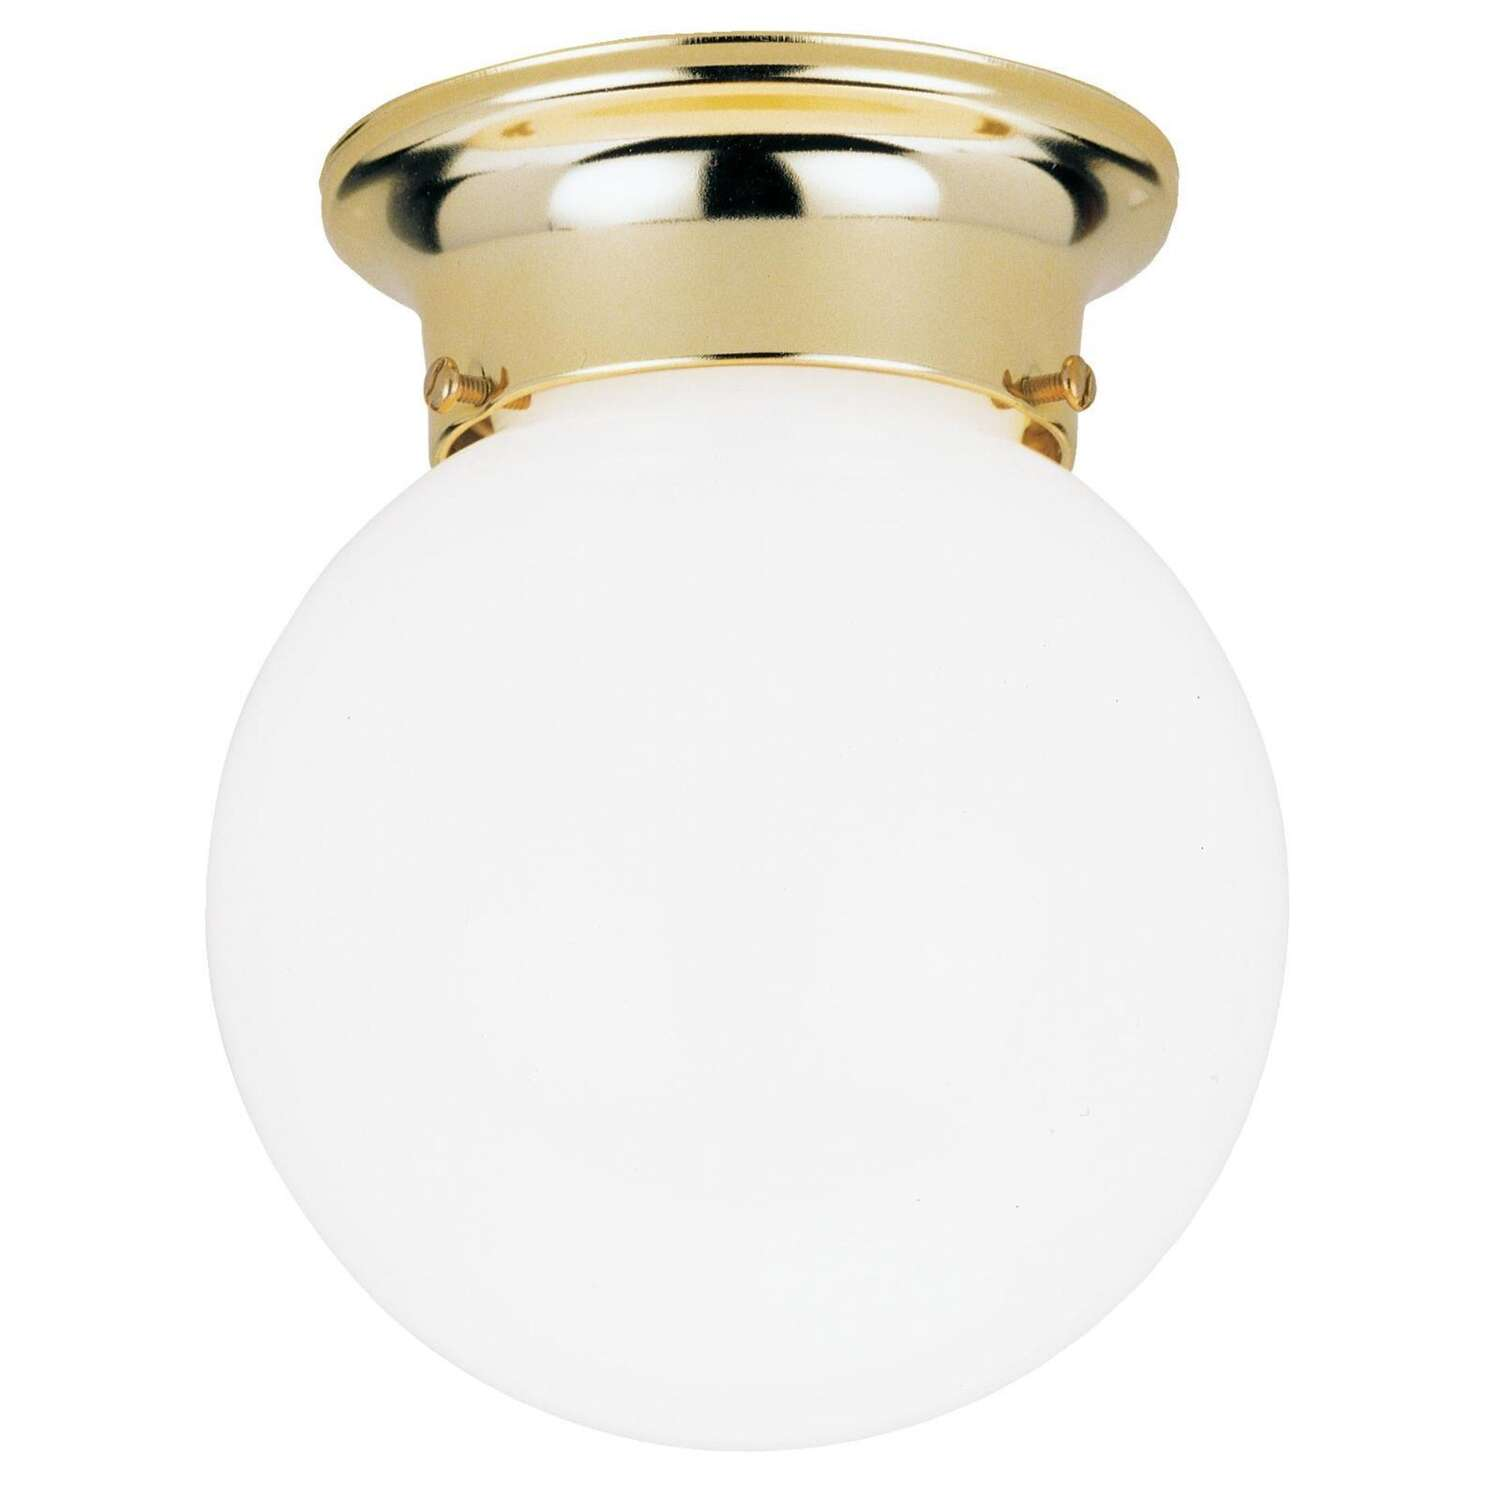 Westinghouse 7-1/4 in. H x 6 in. W x 6 in. L Ceiling Light